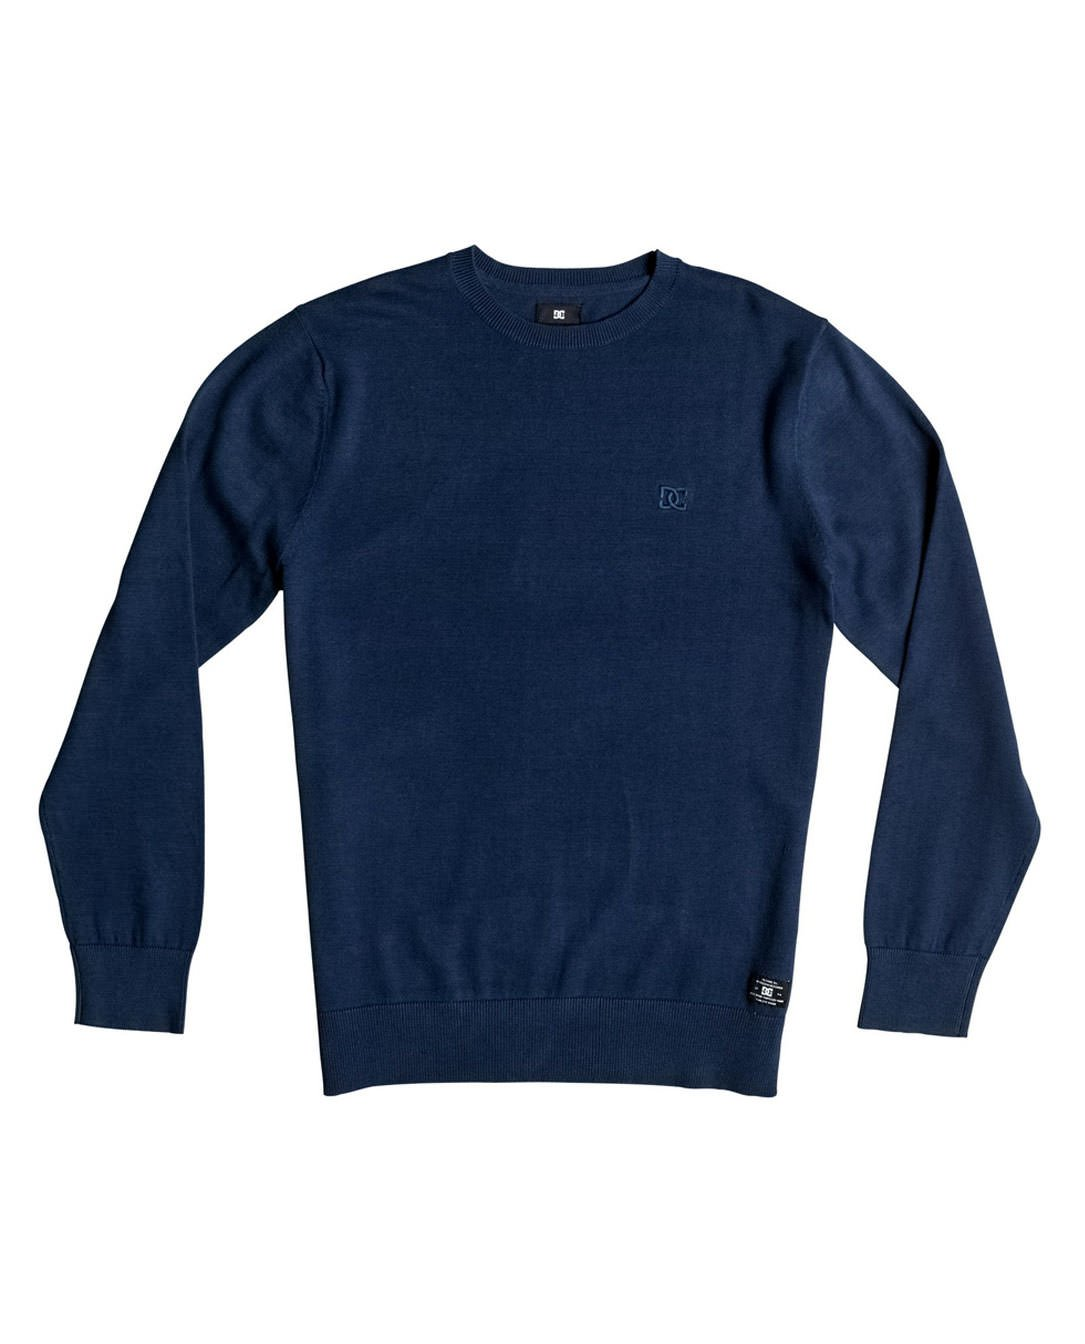 DC SHOES PULLOVER SABOTAGE - LM BOARD STORE